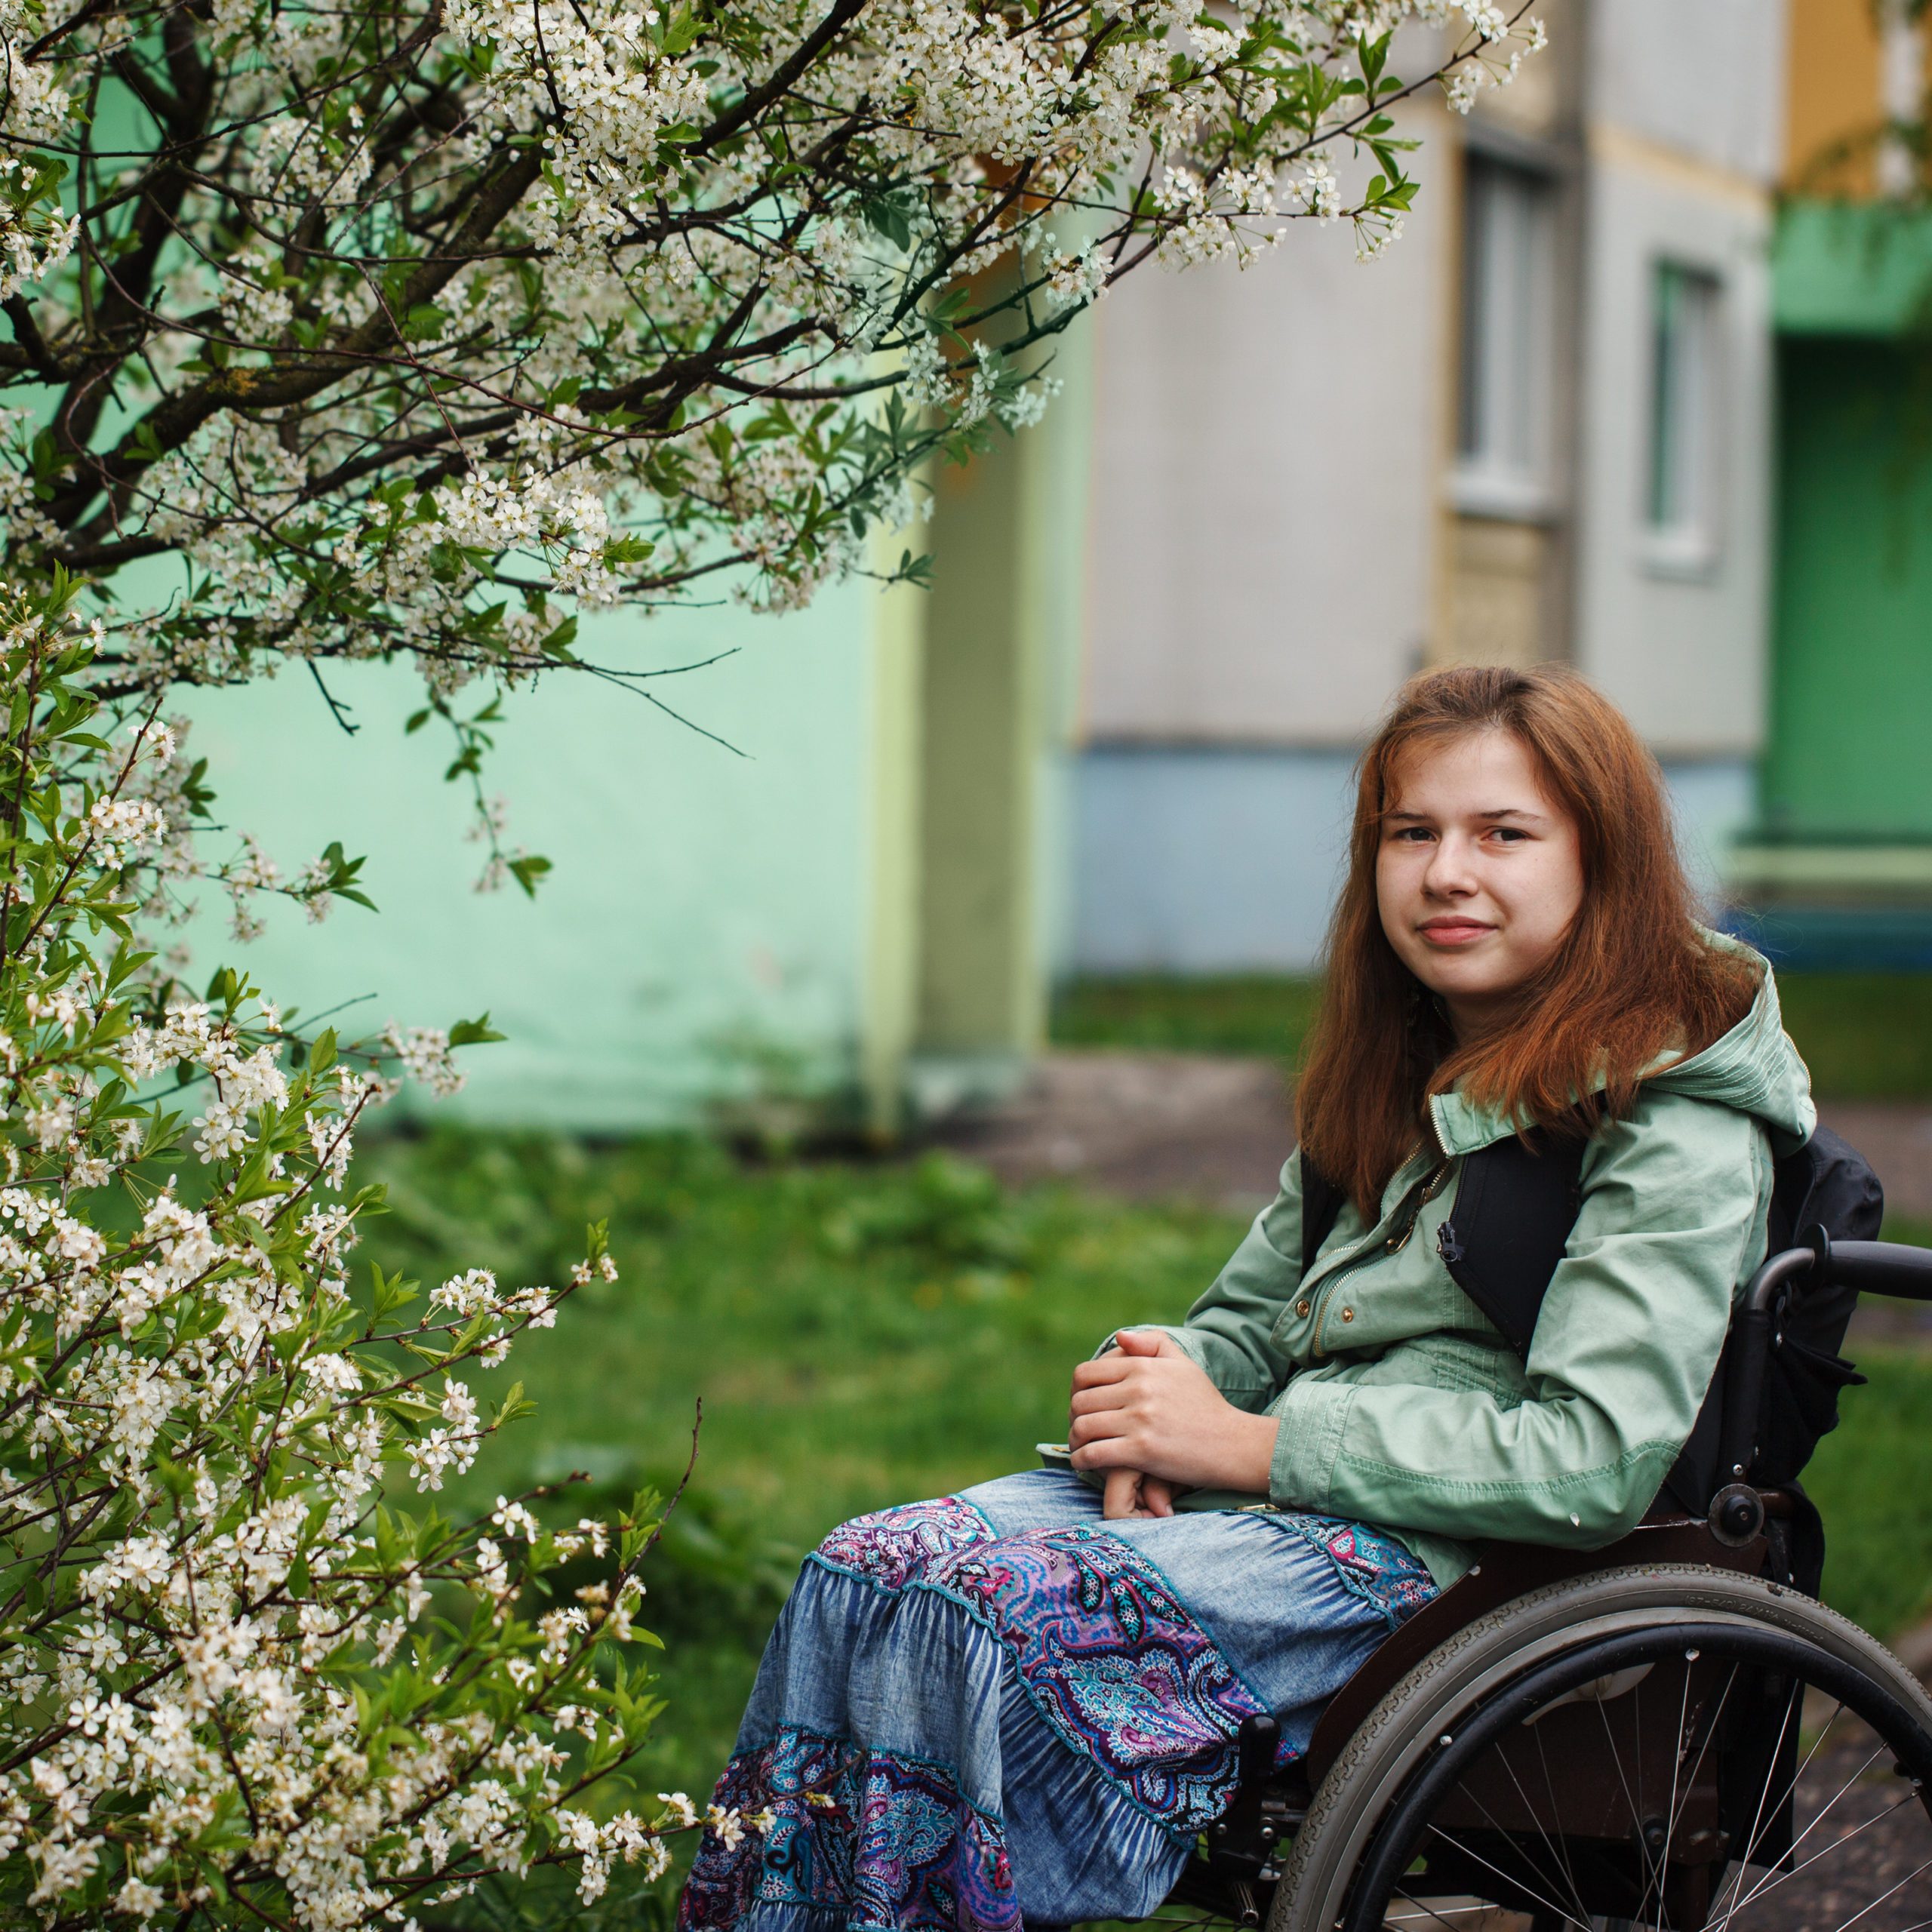 Photo of a young girlw ith brown hair sitting in a wheelchair in the garden under a blossoming tree